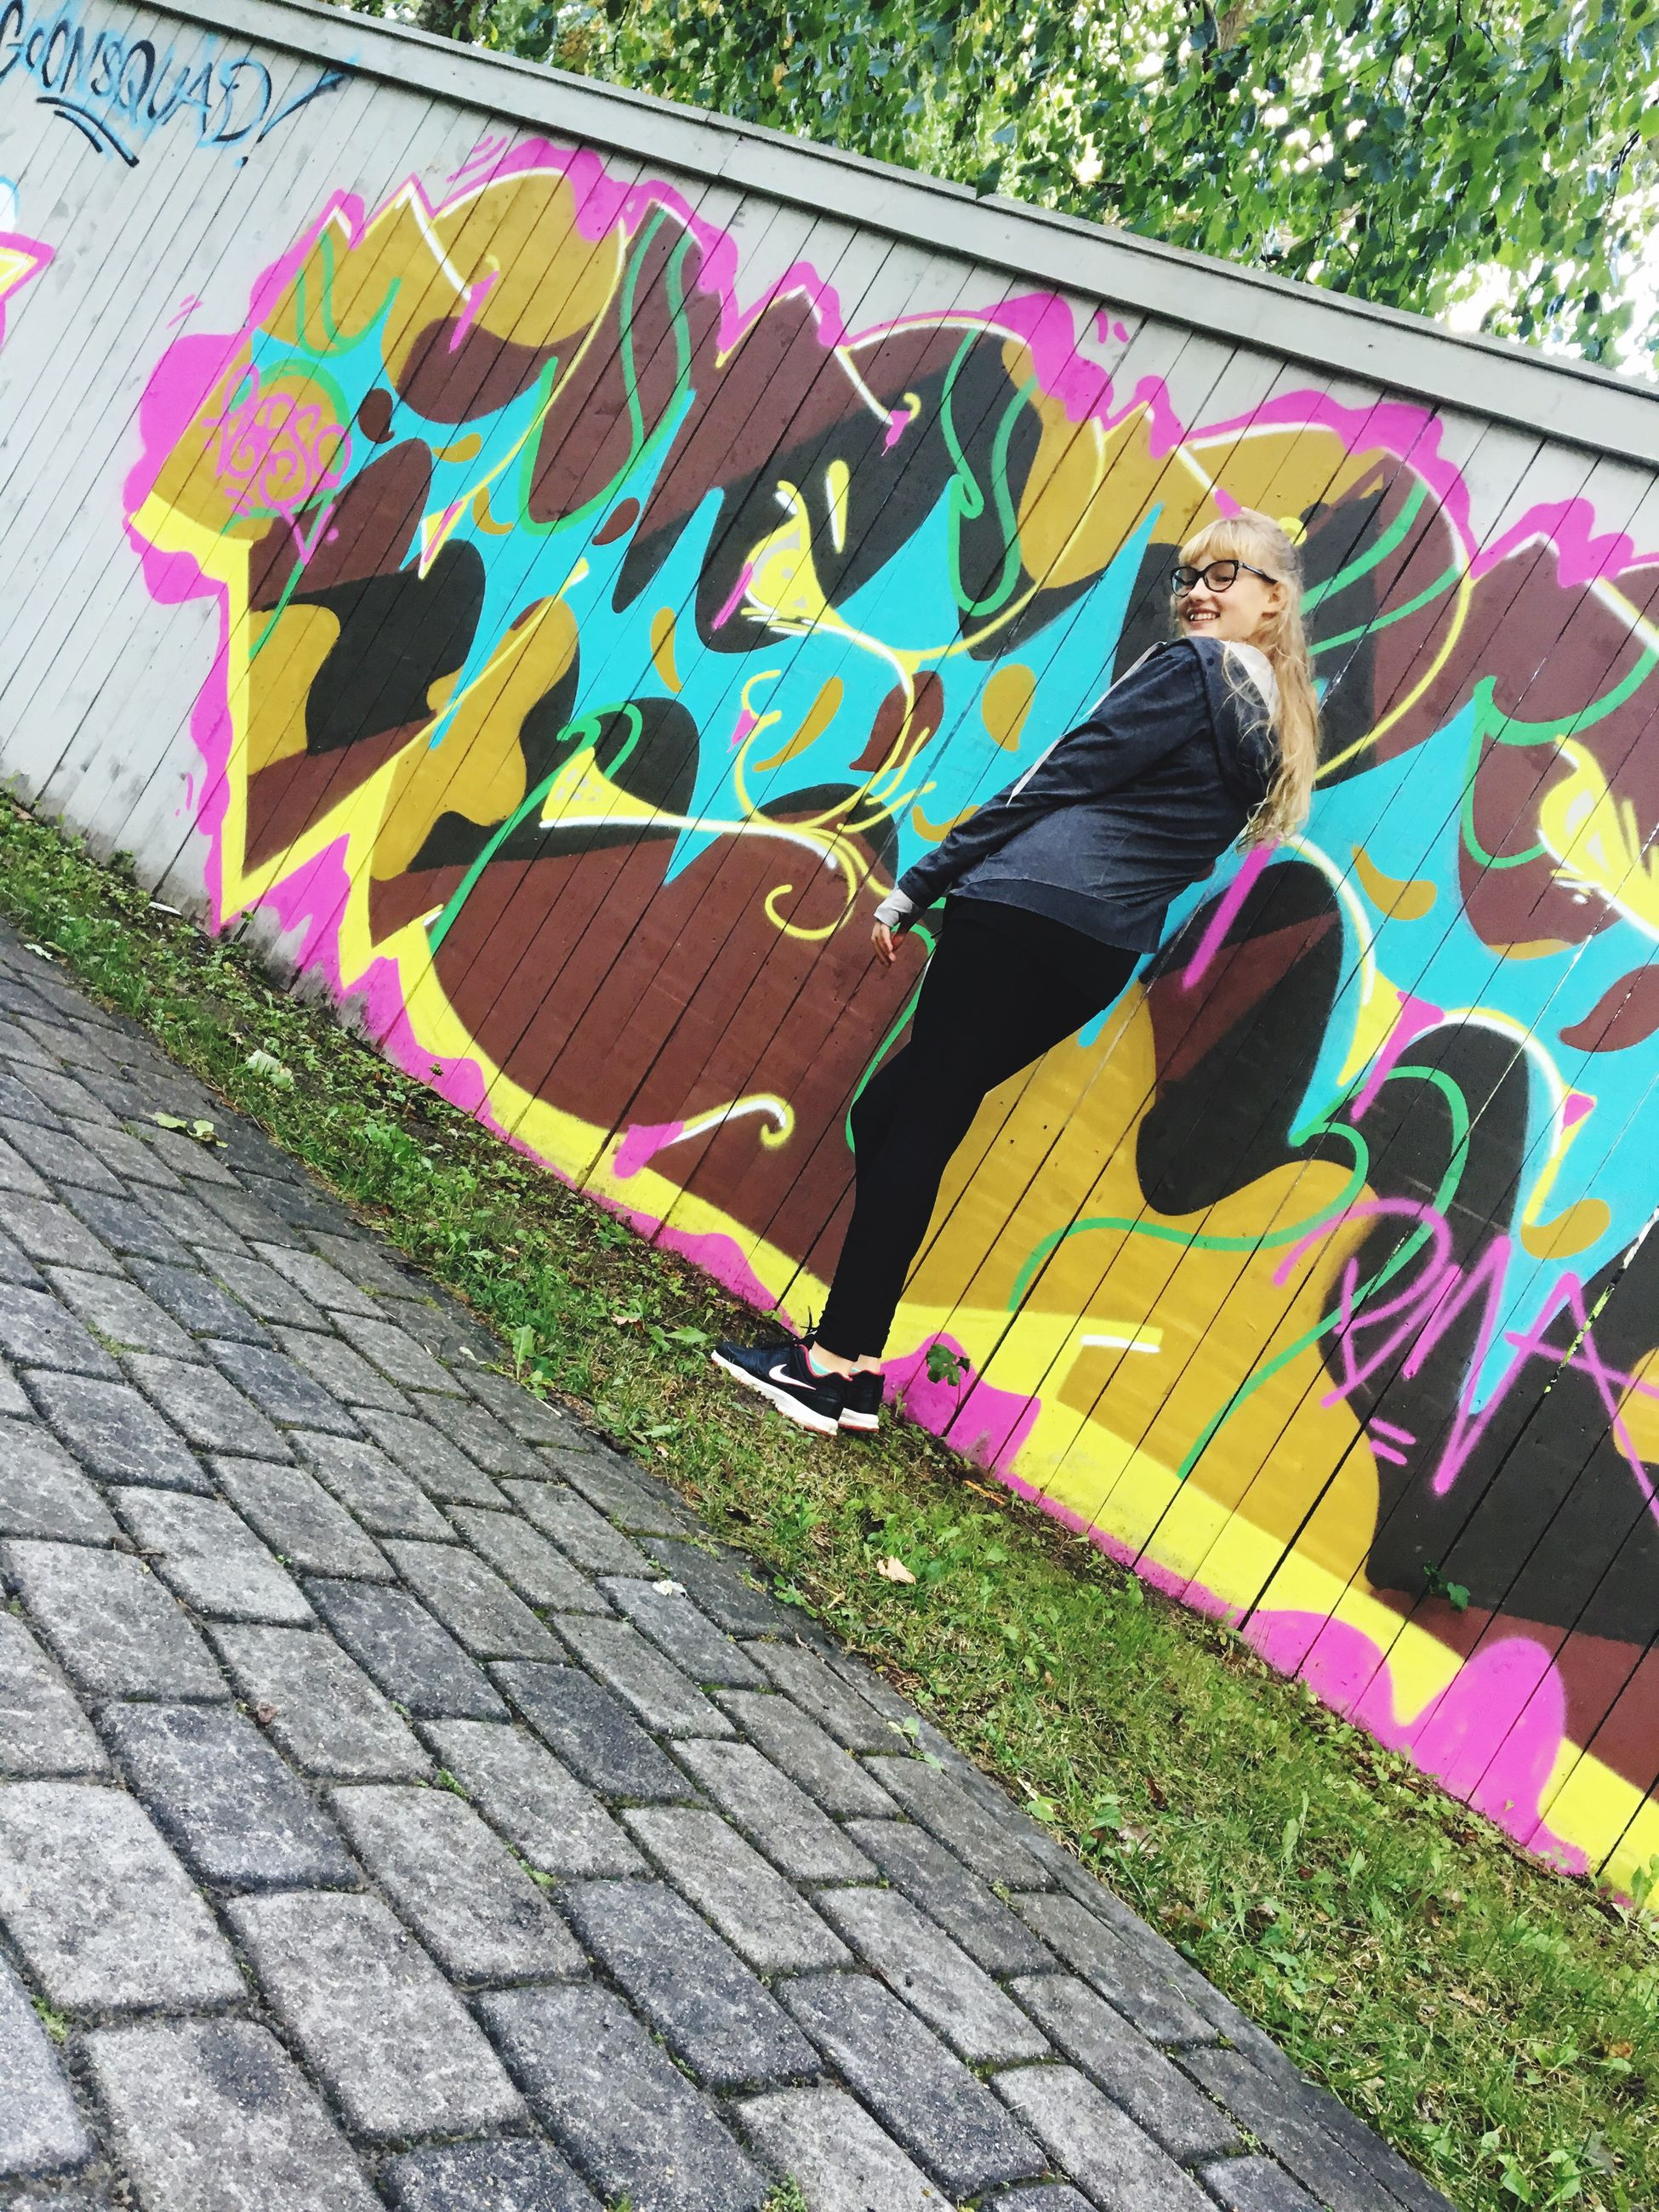 multi colored, graffiti, art and craft, art, full length, creativity, colorful, outdoors, person, curve, footpath, vibrant color